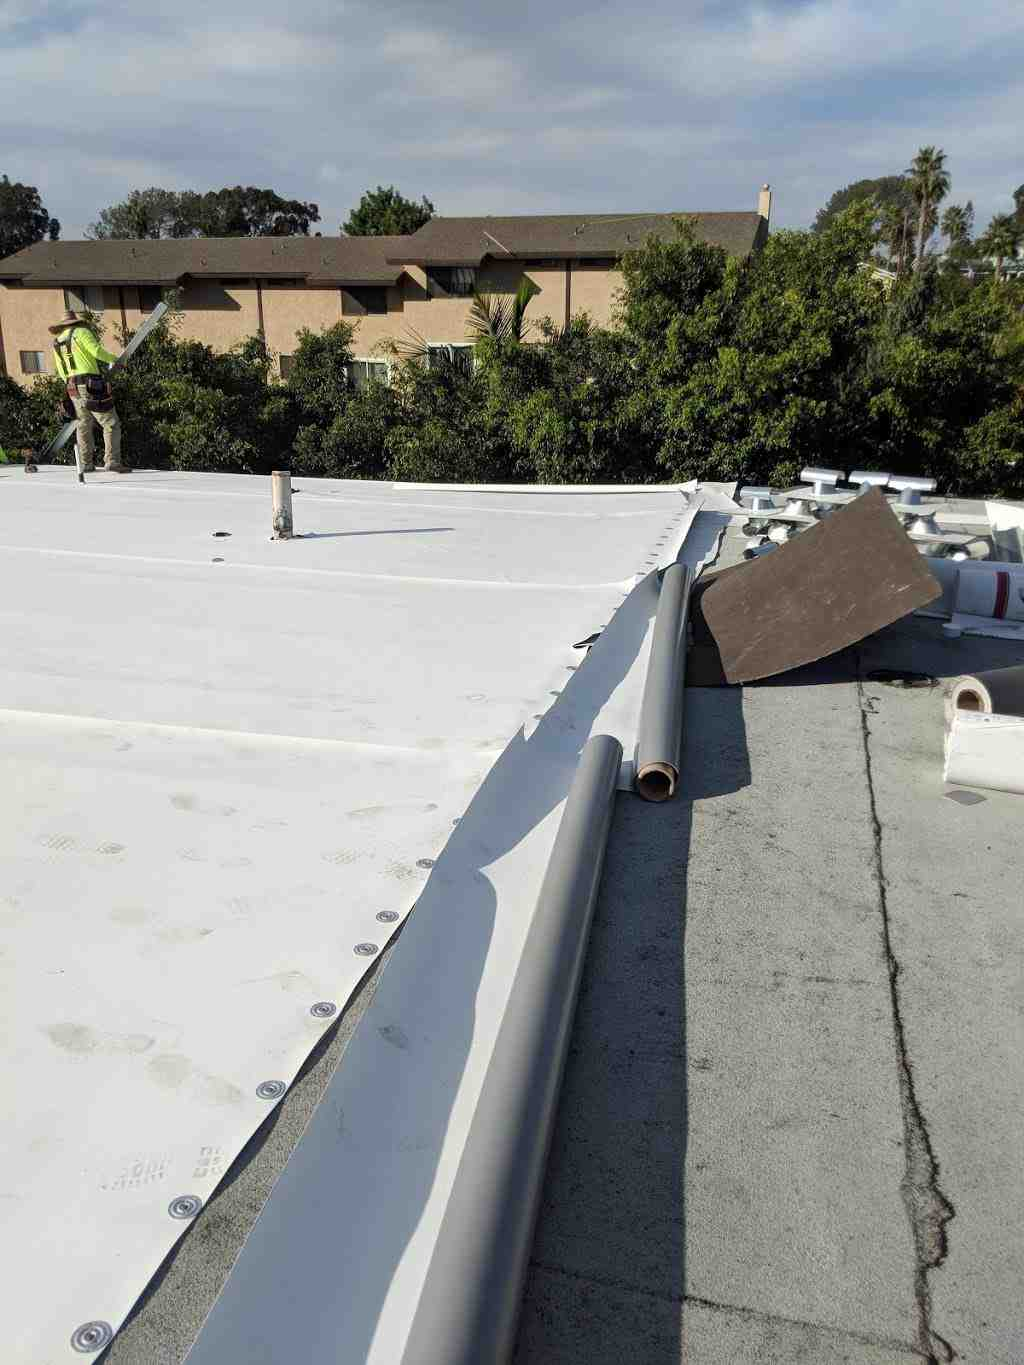 How much does it cost to replace a roof on a 2200 square foot house?